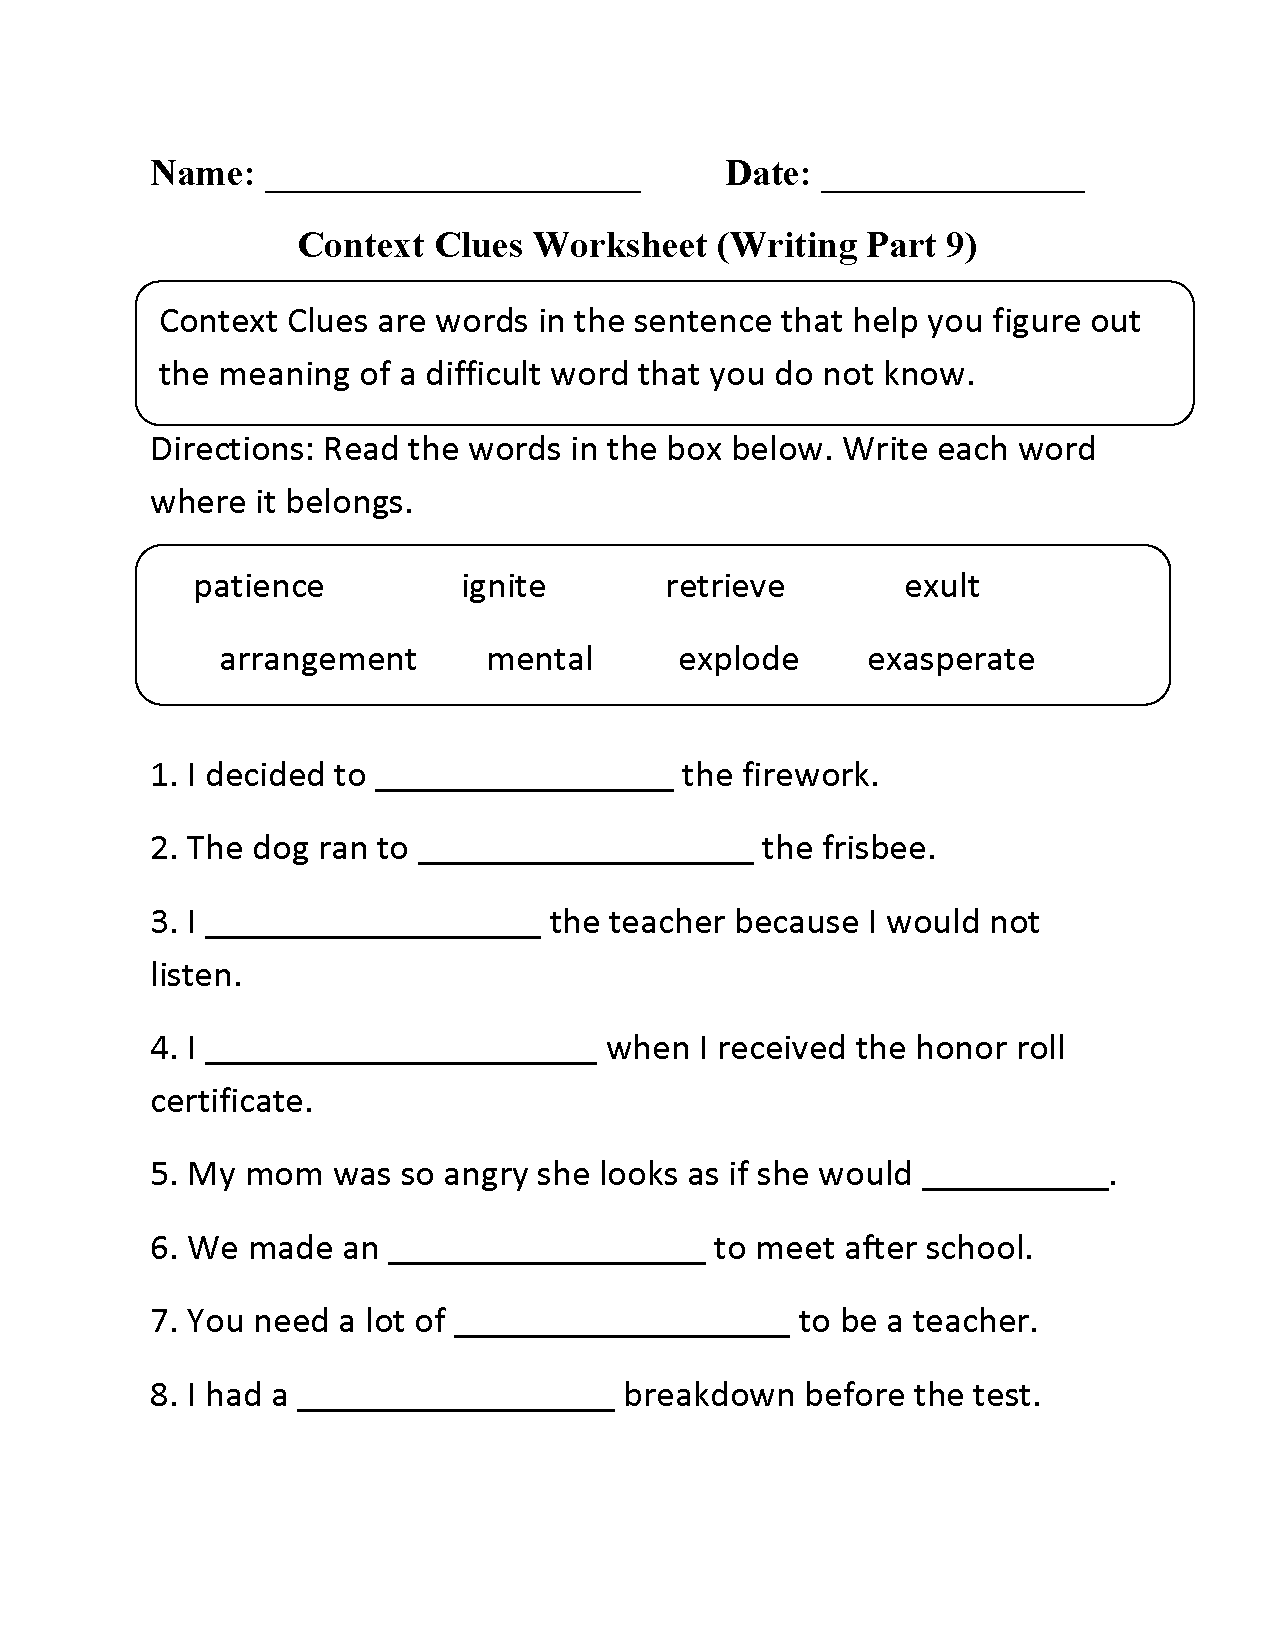 Worksheets Context Clue Worksheets 2nd grade worksheets context clues new 4th pdf elegant 200 most downloaded